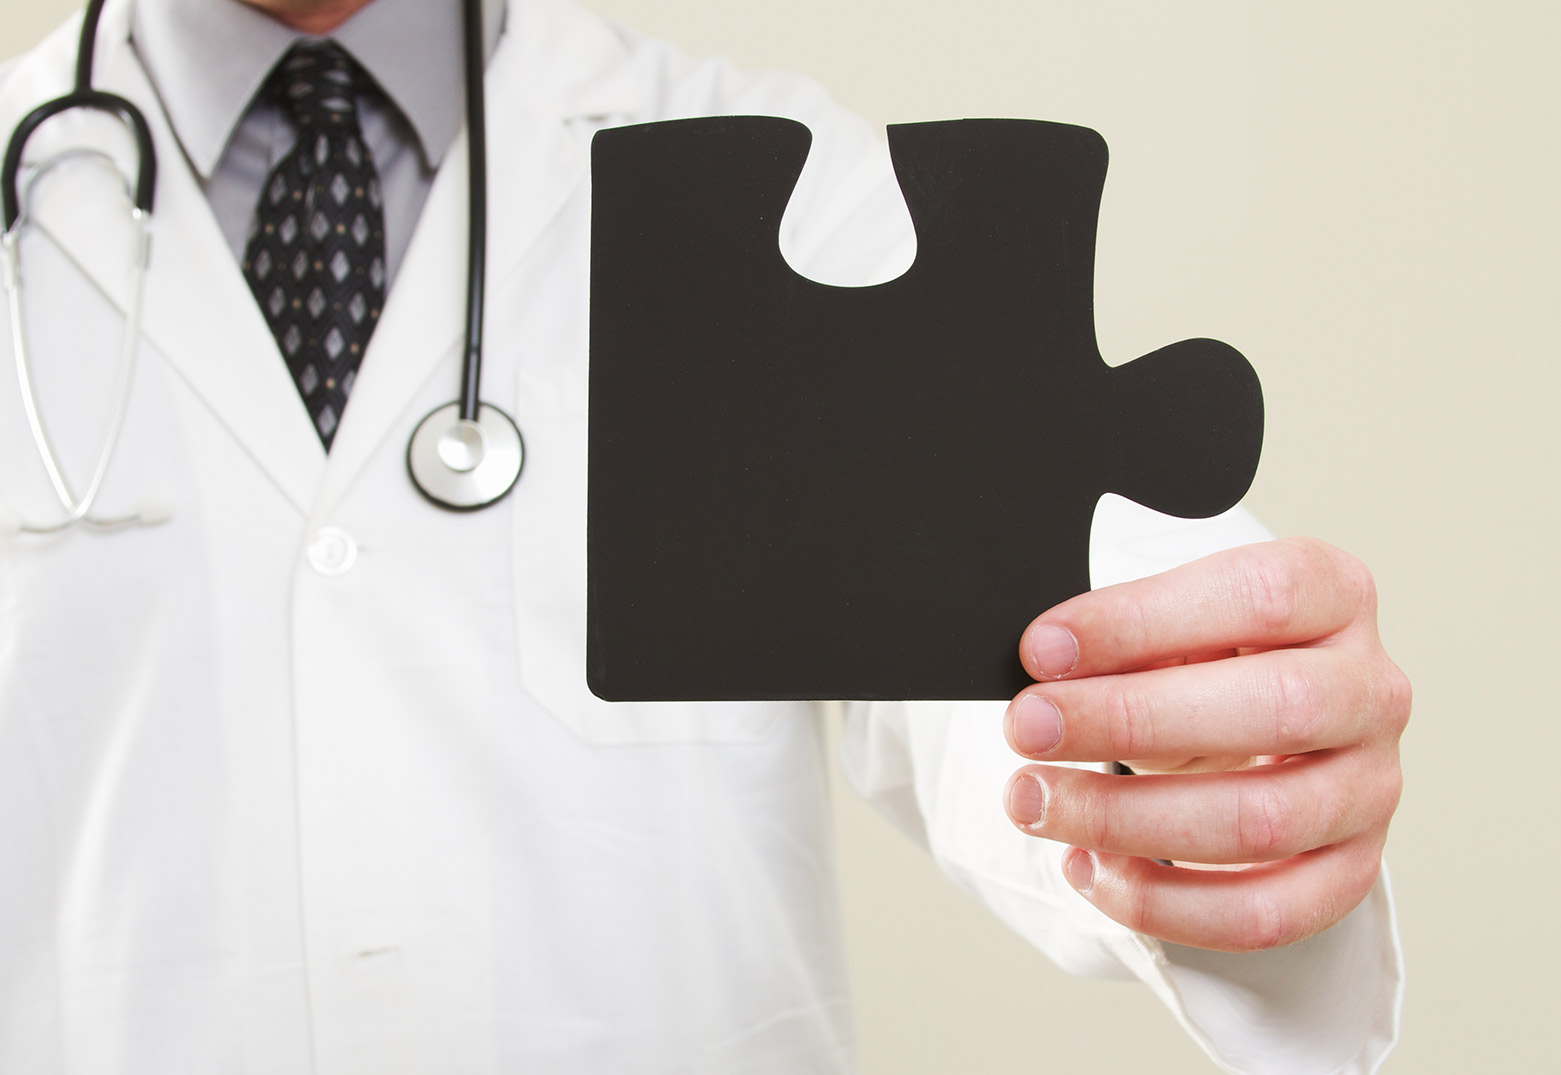 physician holding a missing piece of a puzzle representing a gap in care